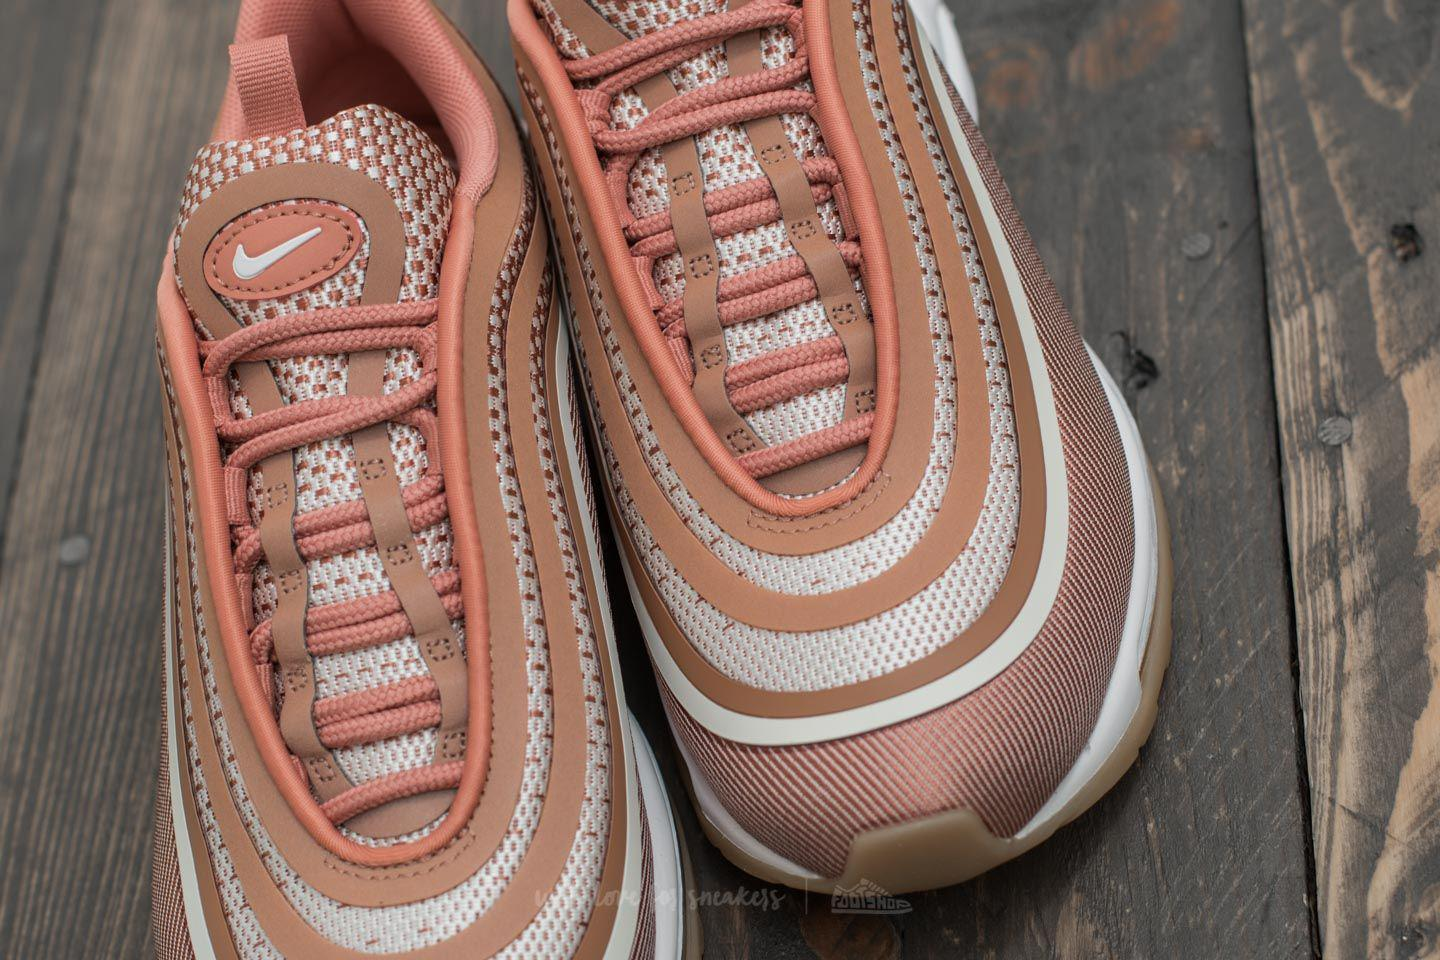 Nike W Air Max 97 Ul 17 Low Metallic Rose GoldGum Light